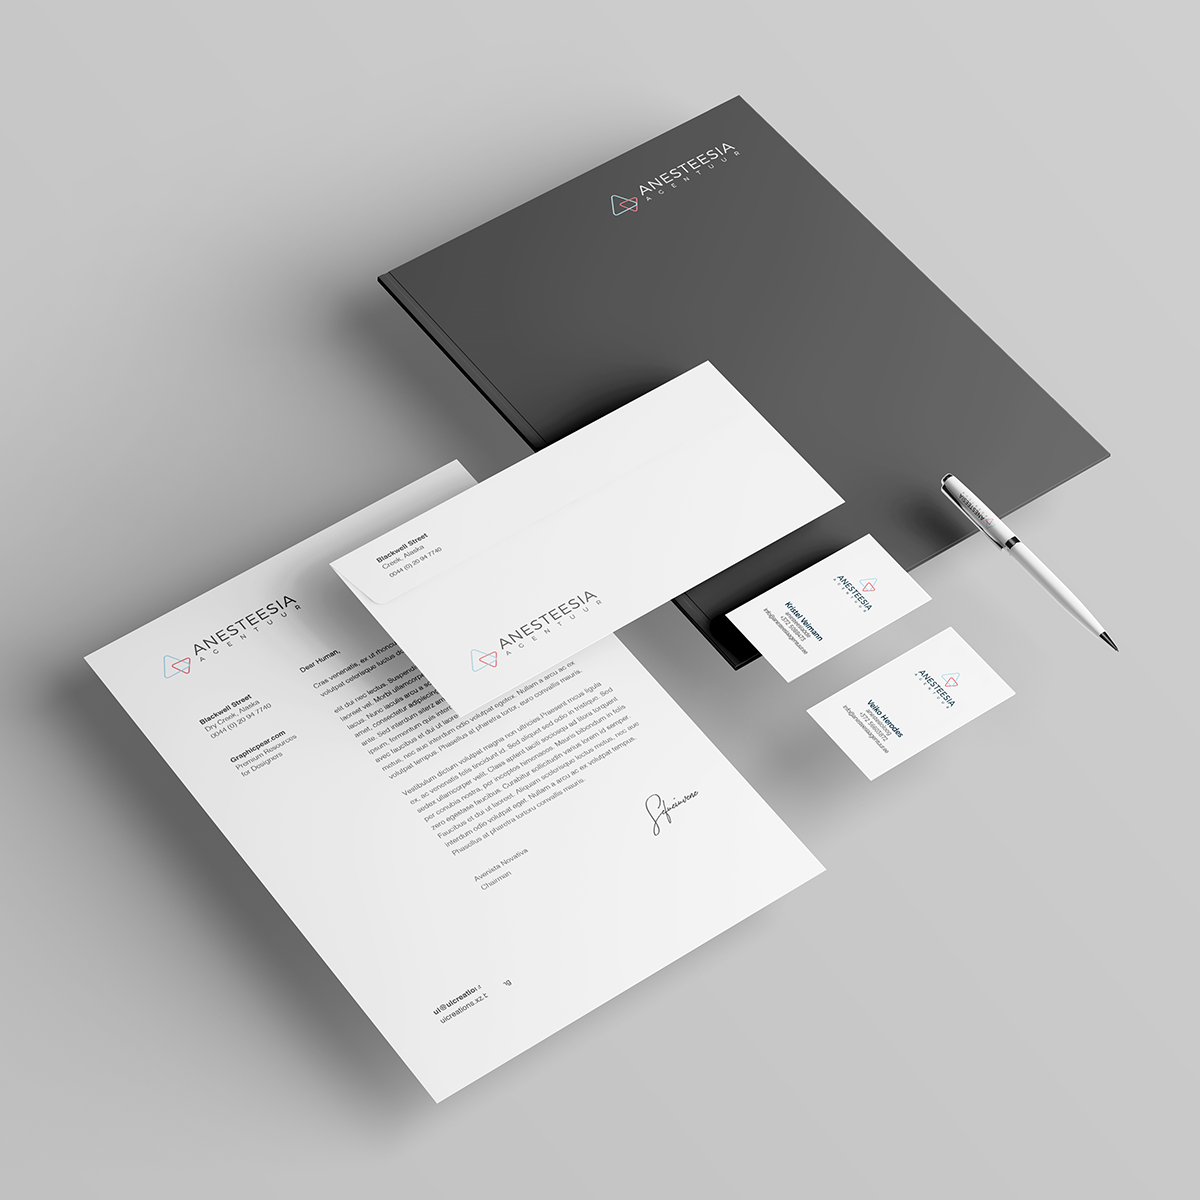 A_Agentuur_mockup_1200x1200px